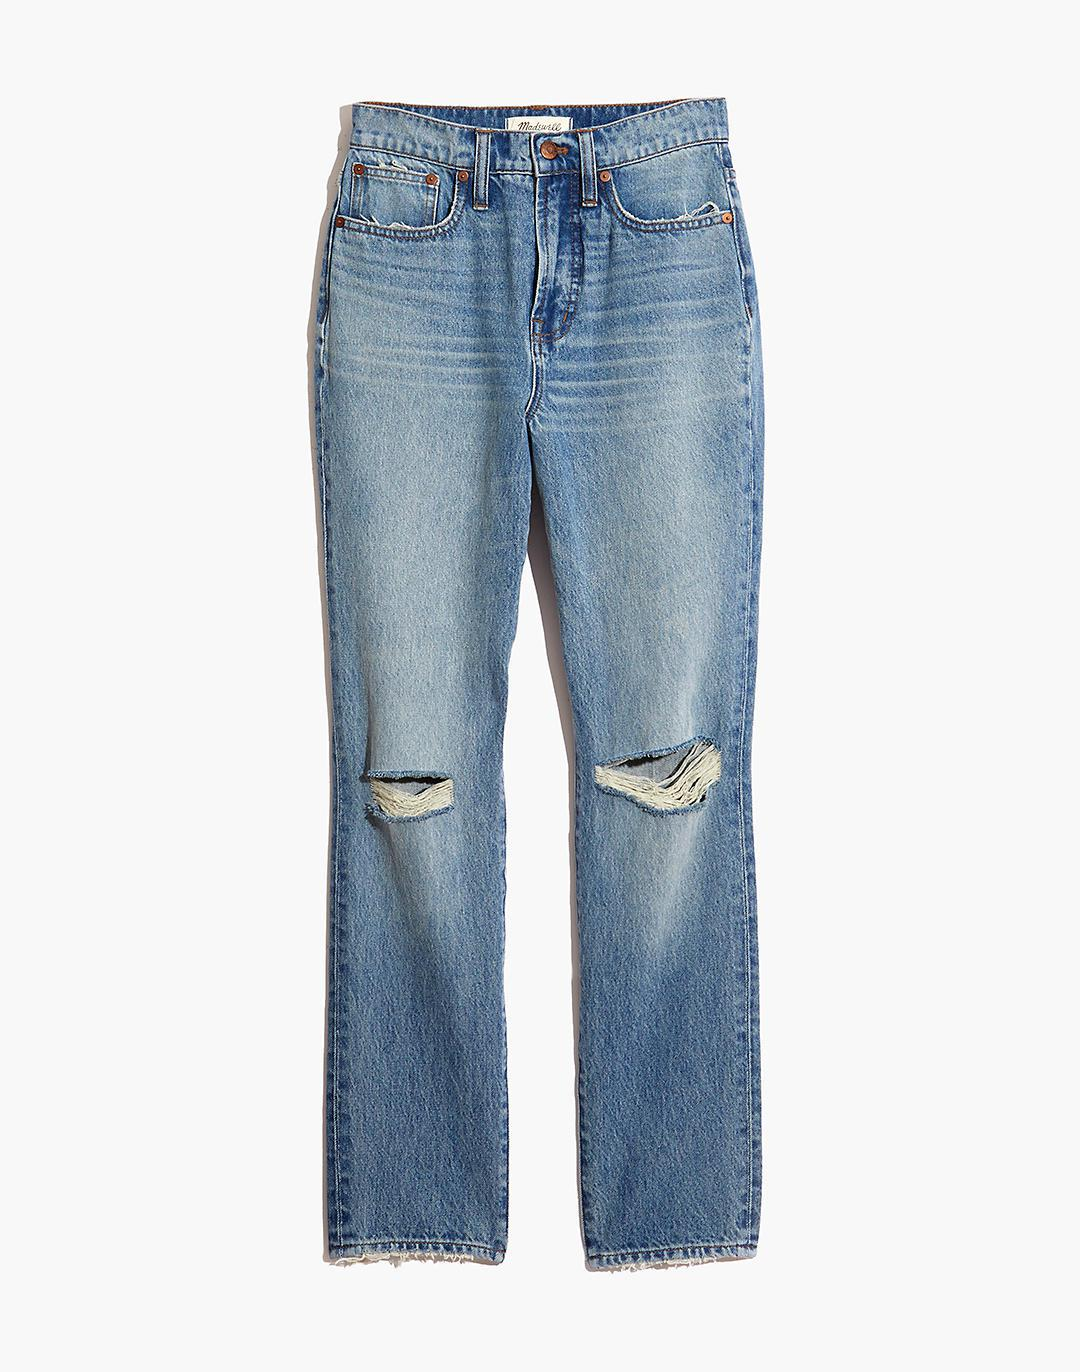 The Perfect Vintage Jean in Phillips Wash: Knee-Rips Edition 5